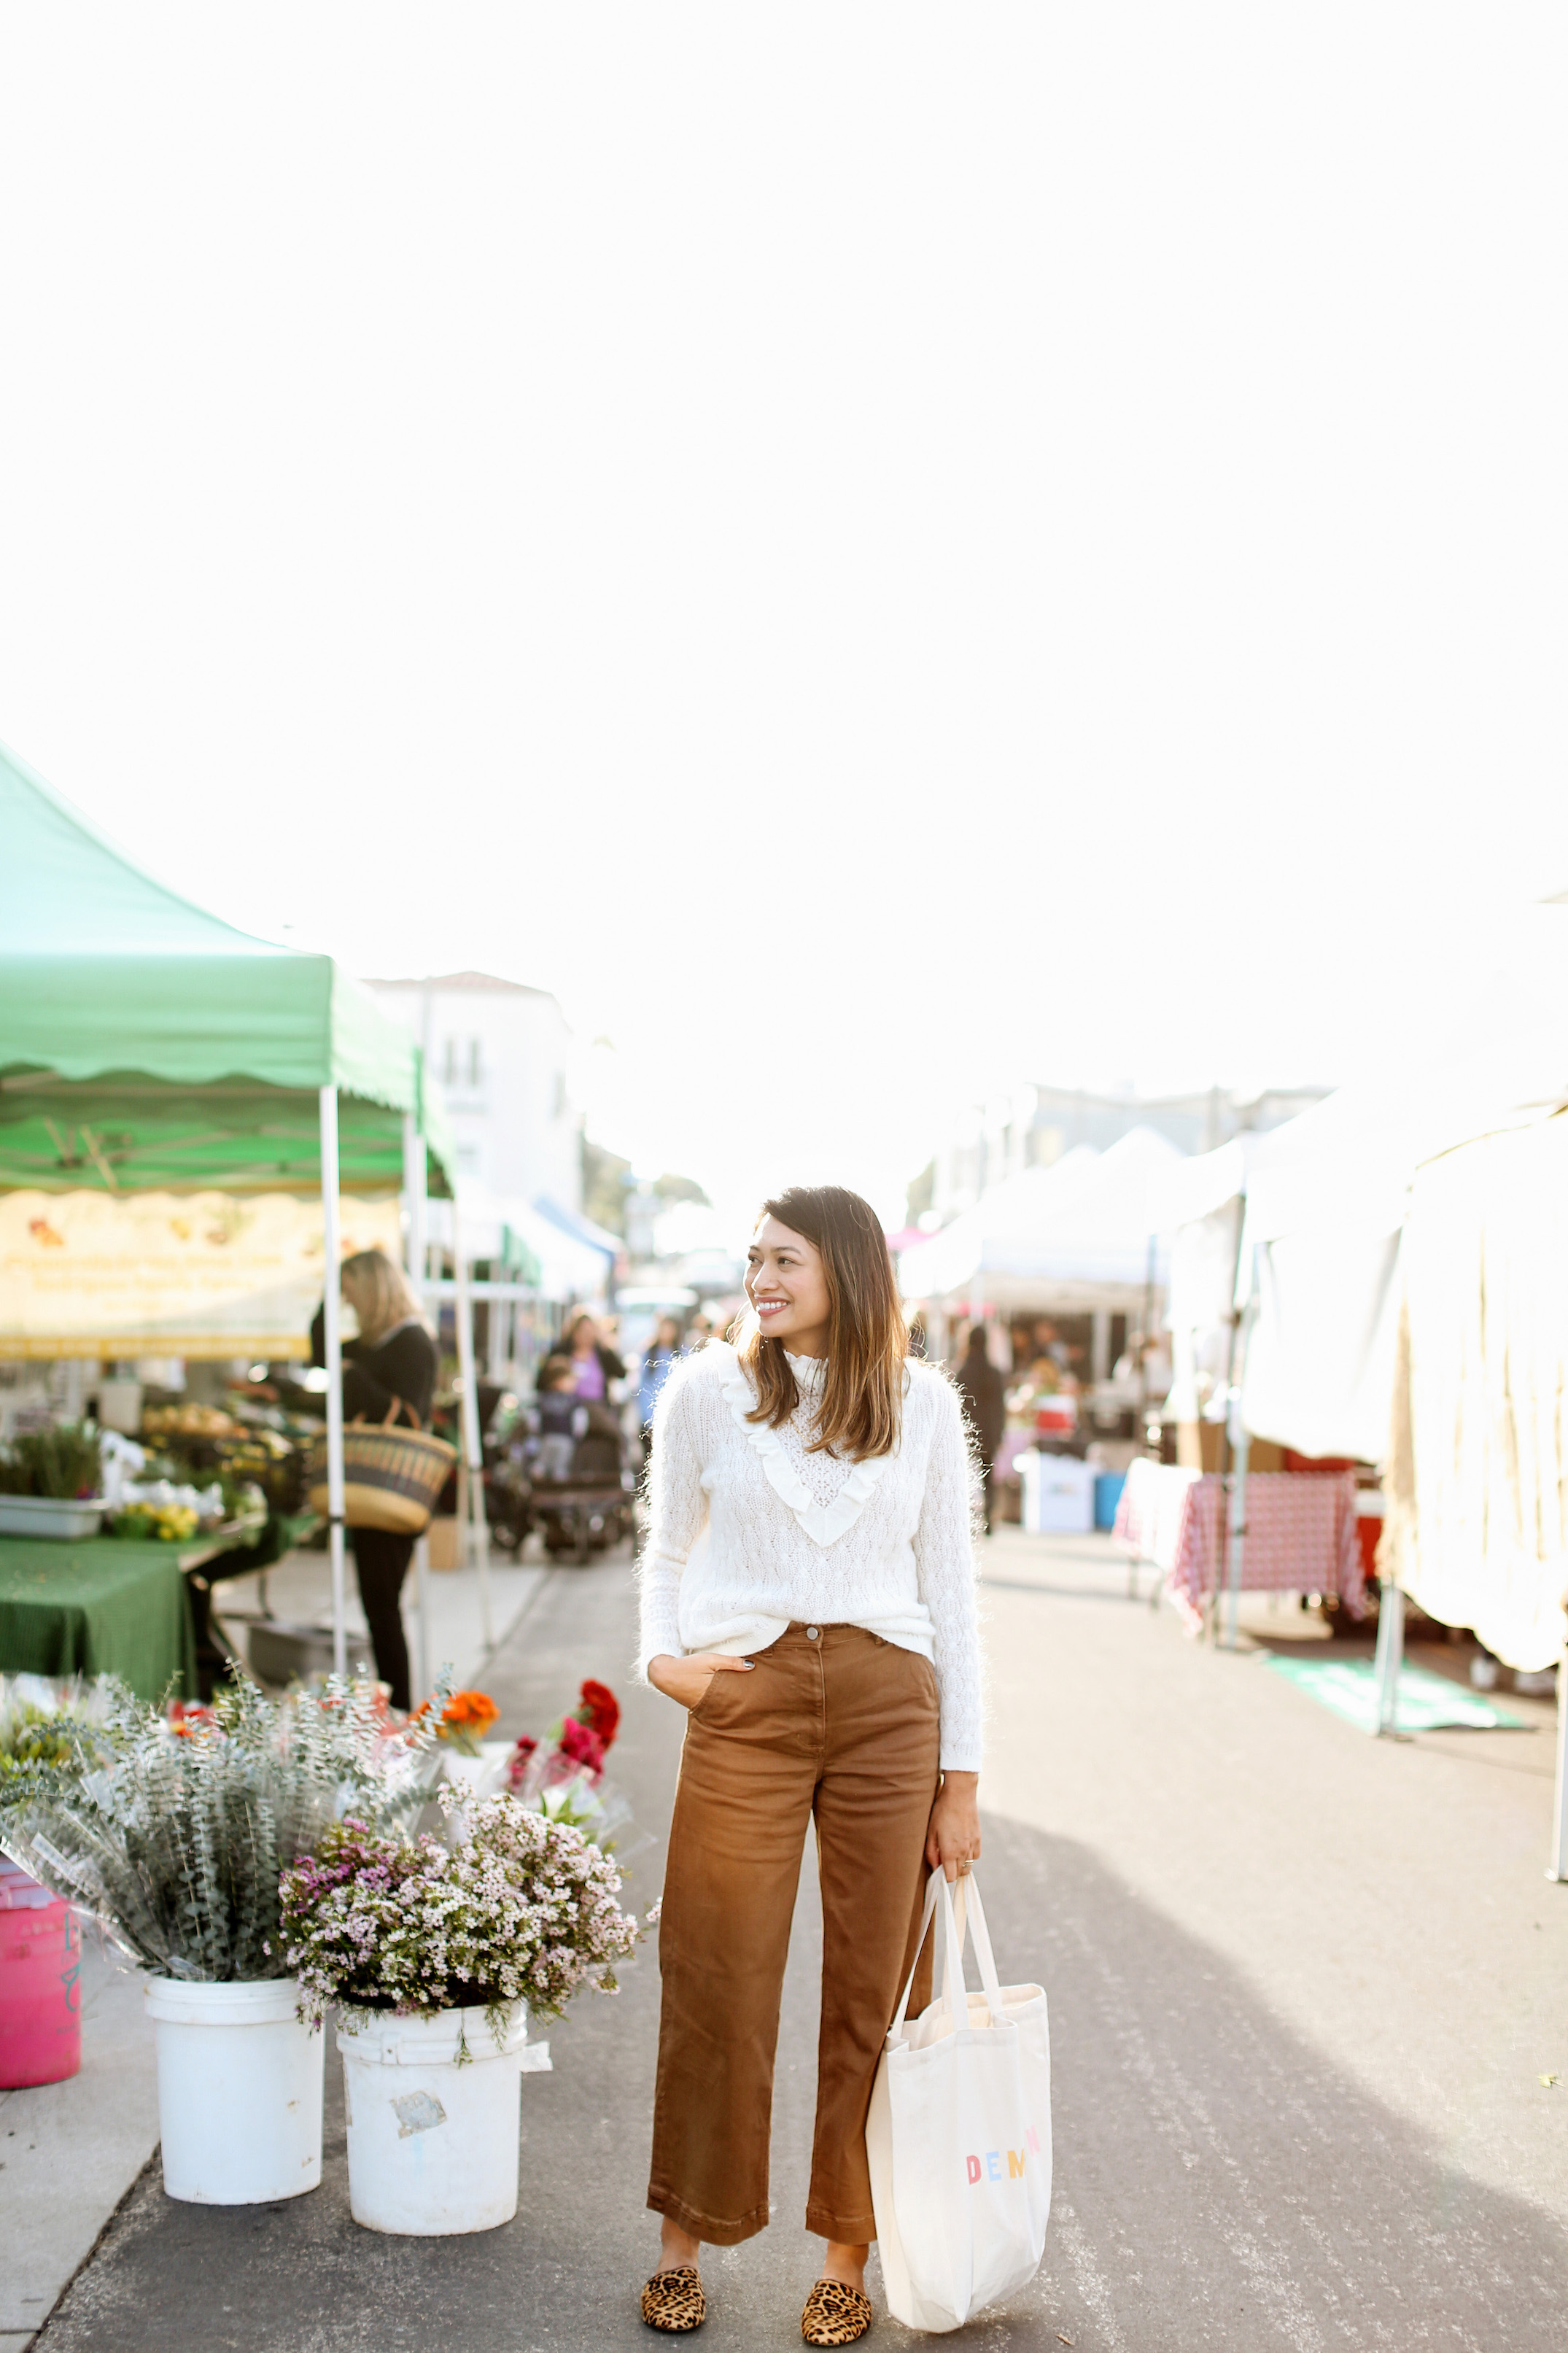 Farmer's Market outfit | A Week Of Polished & Professional Outfits With Sustainable Lifestyle Blogger Jonilyn Brown on The Good Trade